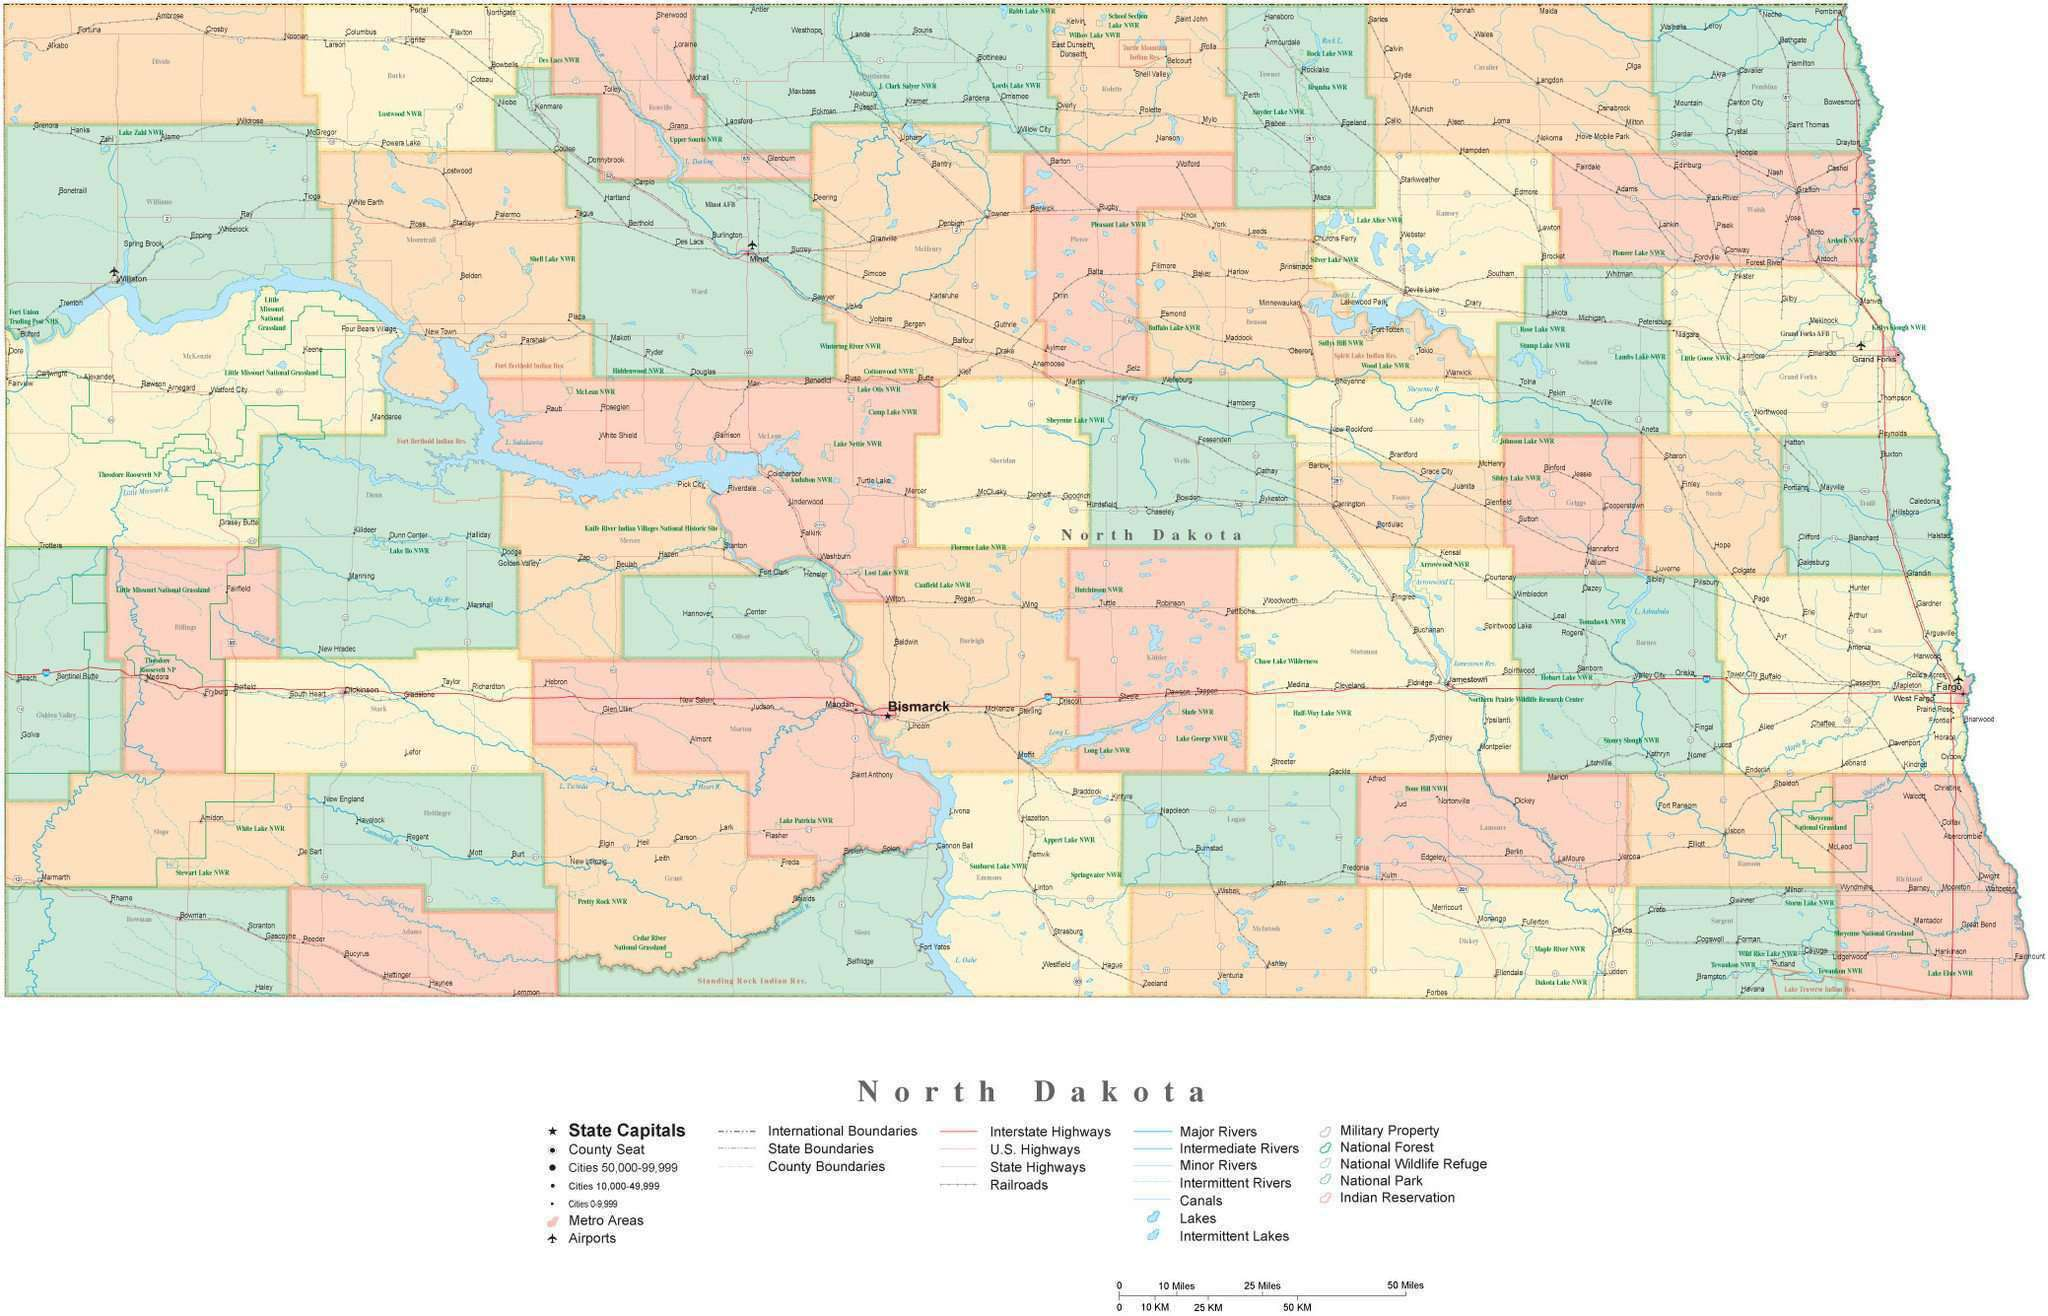 Detailed North Dakota Cut-Out Style Digital Map with Counties, Cities,  Highways, National Parks and more